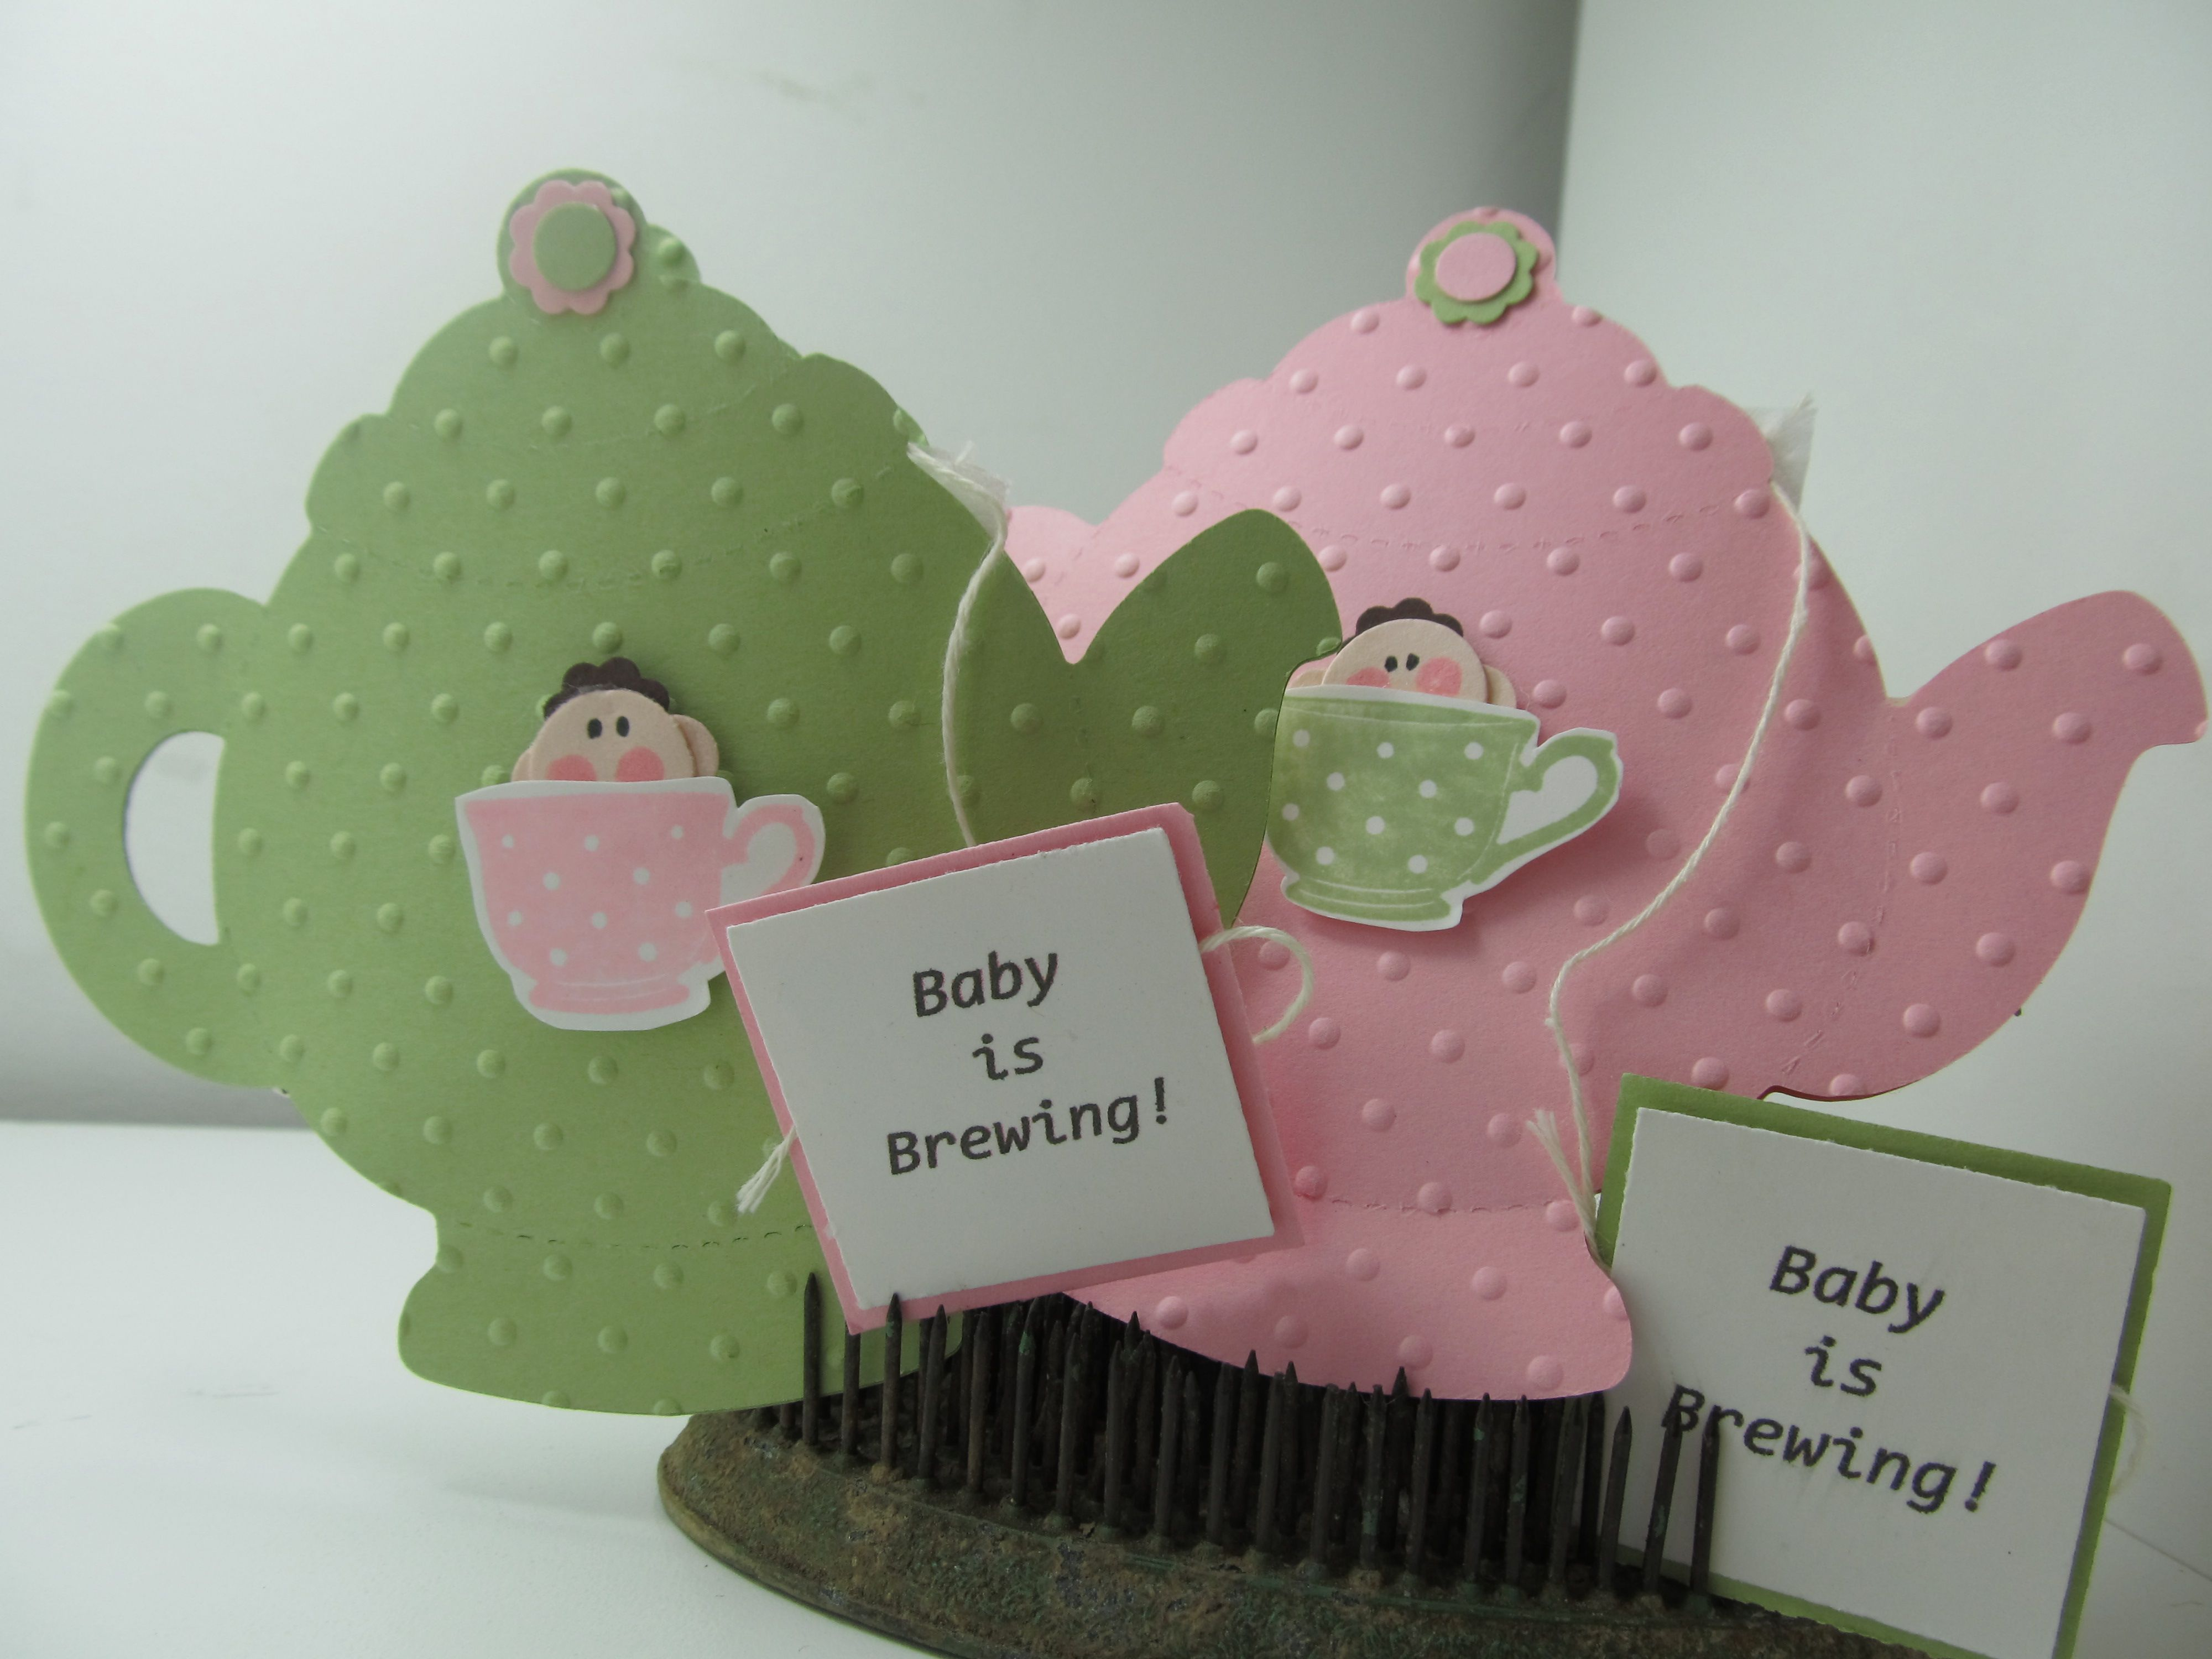 These are baby shower invitations i made for my sister in law and a these are baby shower invitations i made for my sister in law and a baby shower she is throwing teapot is a sizzix diecut teacup stamp is stampin up and filmwisefo Choice Image